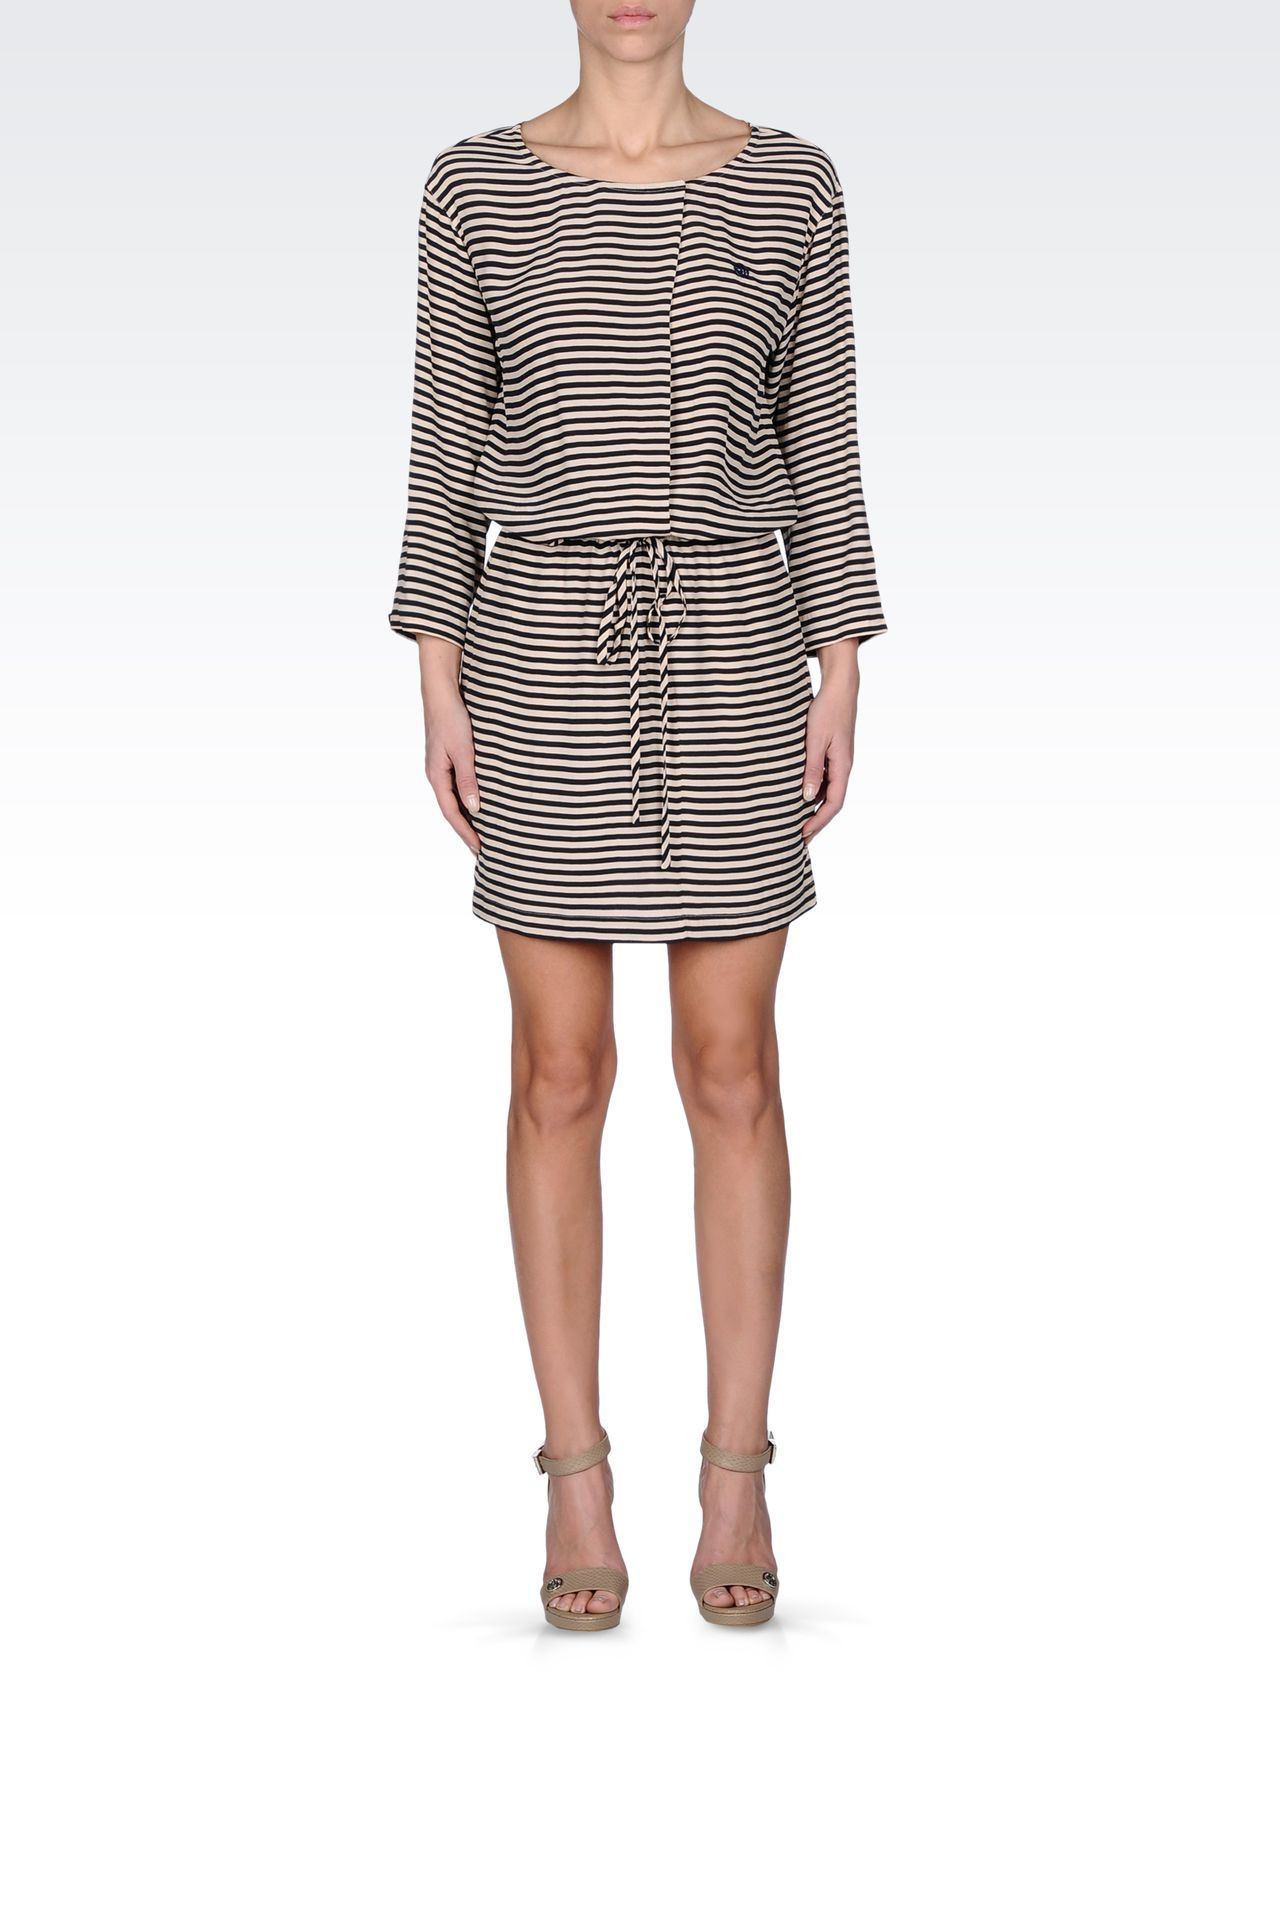 NAVY DRESS IN STRIPED VISCOSE CRÊPE: Short Dresses Women by Armani - 0